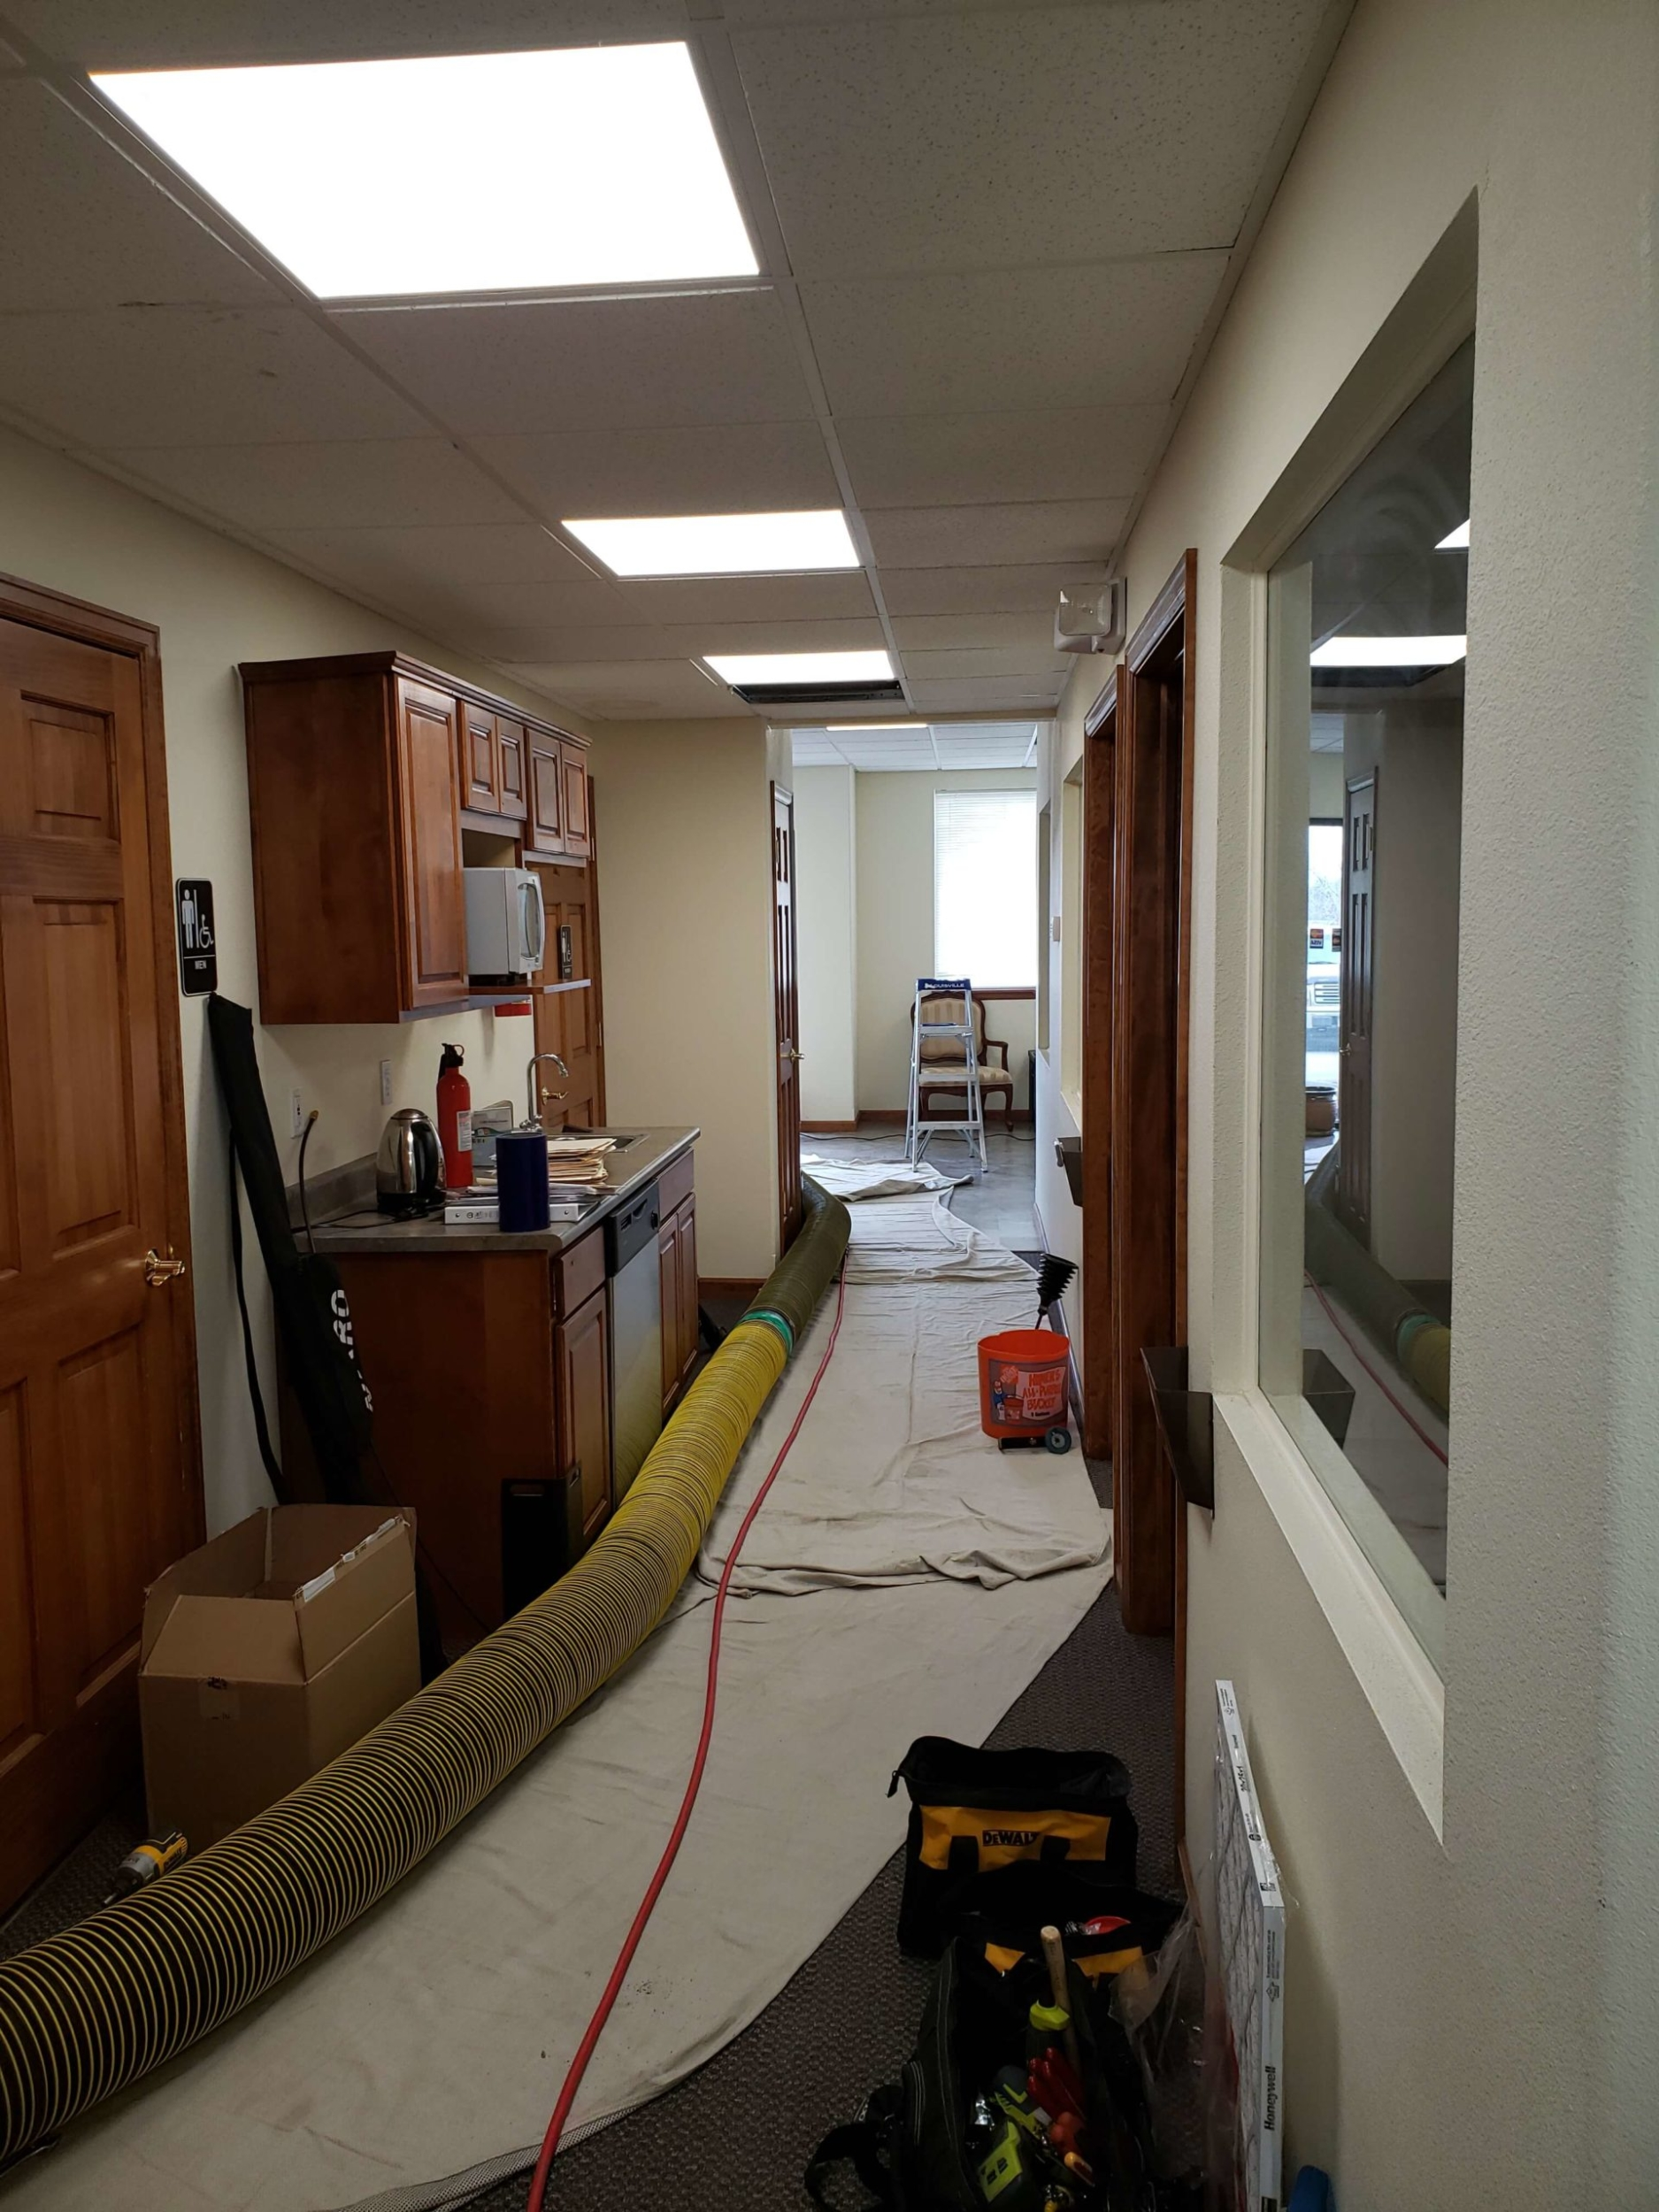 Commercial business hallway with professional HVAC cleaning equipment set up